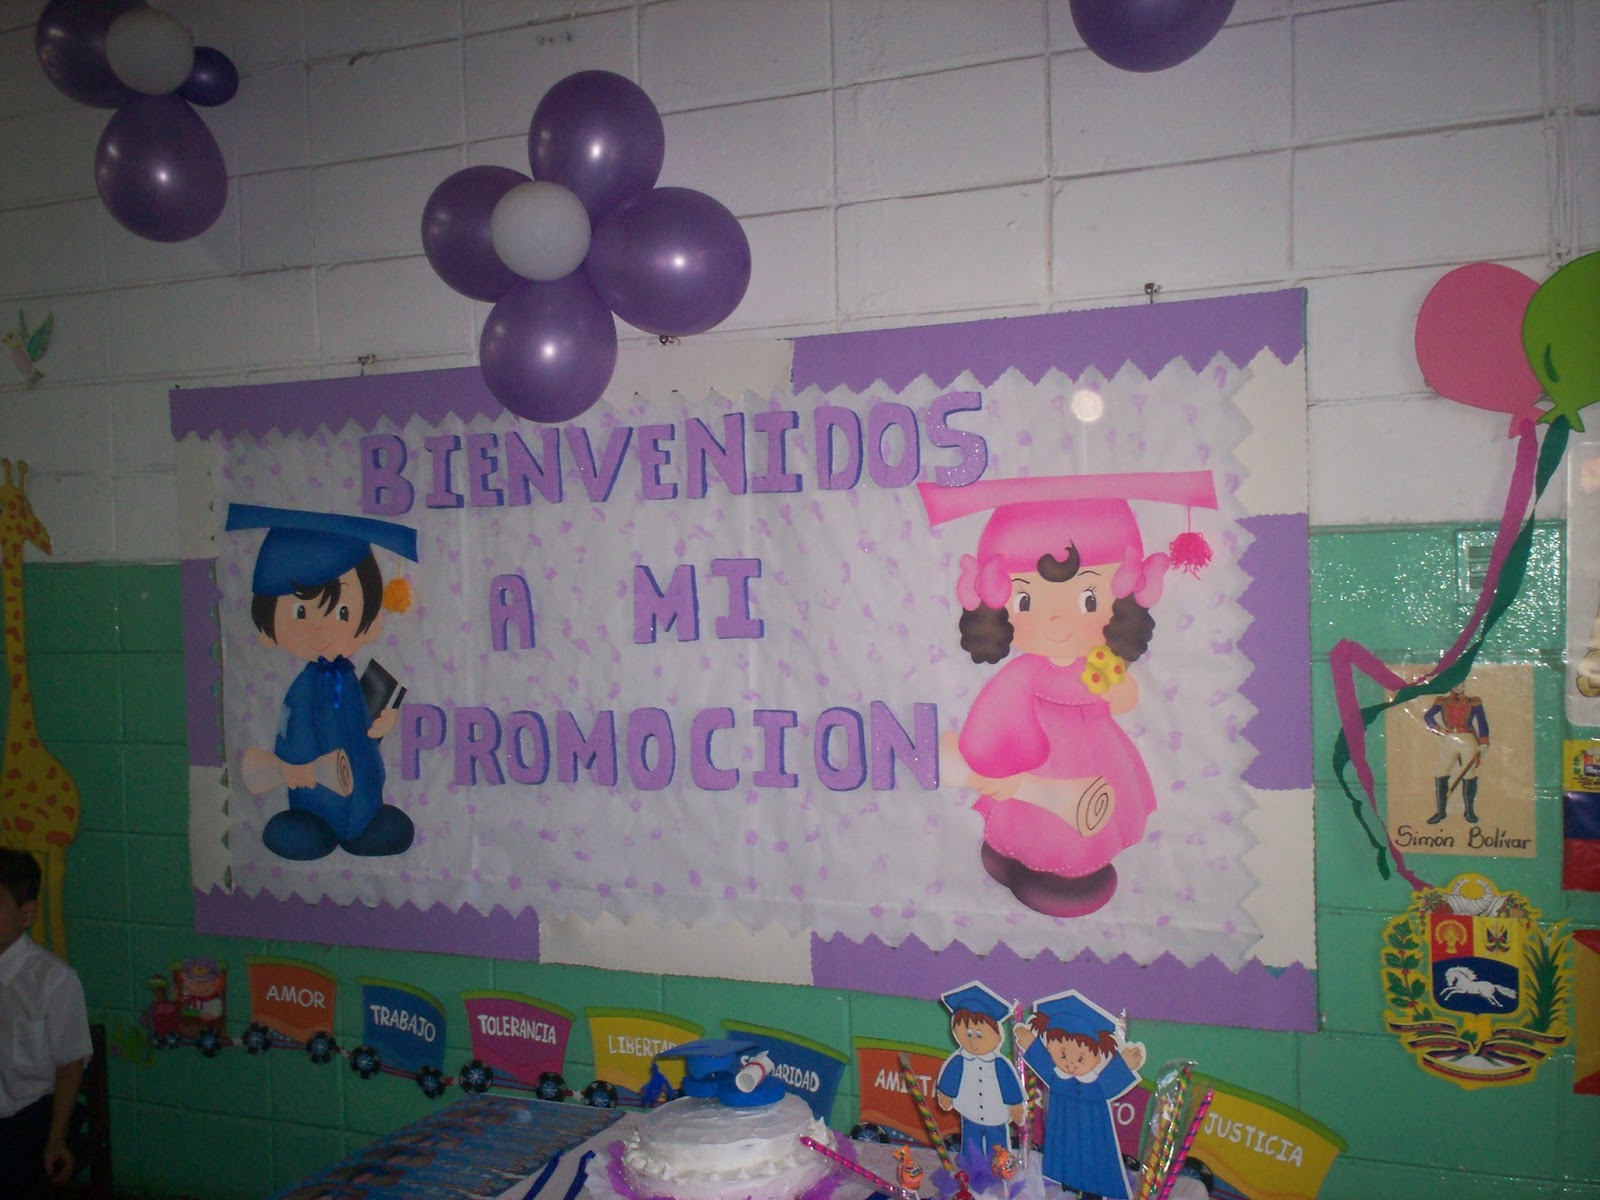 Graduacion Decoracion ~ Decoracion Graduacion Related Keywords & Suggestions  Decoracion